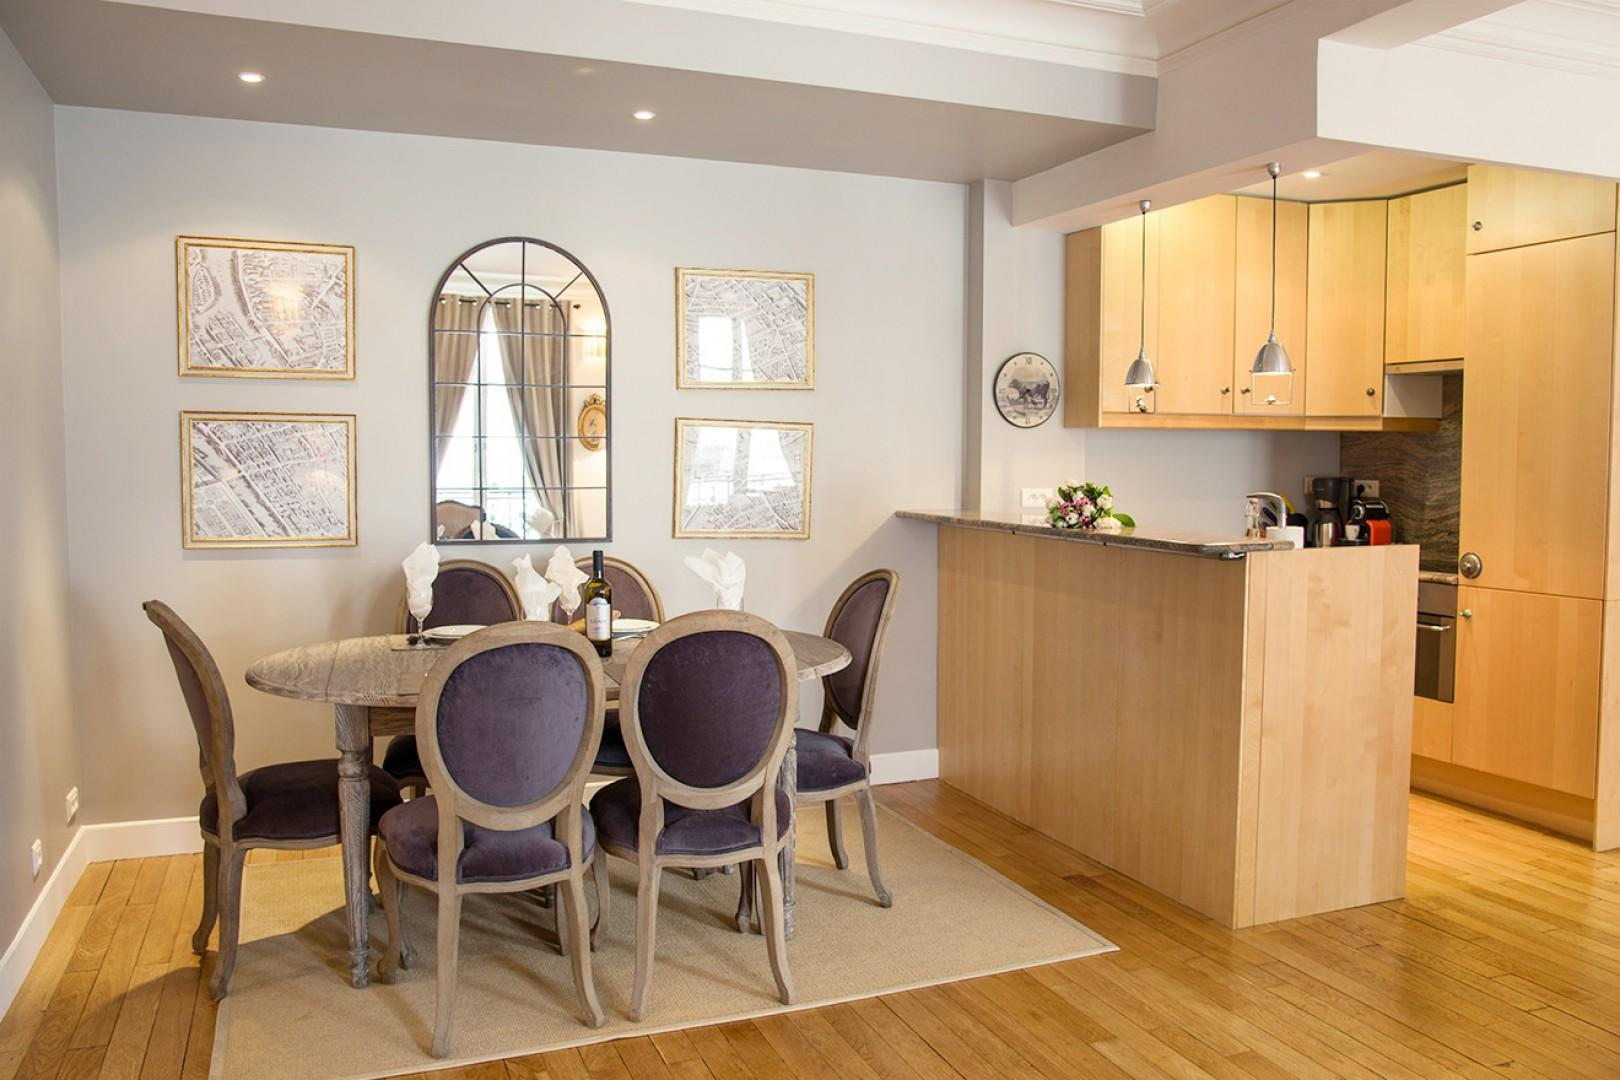 The open-plan dining area and kitchen have an airy feel.